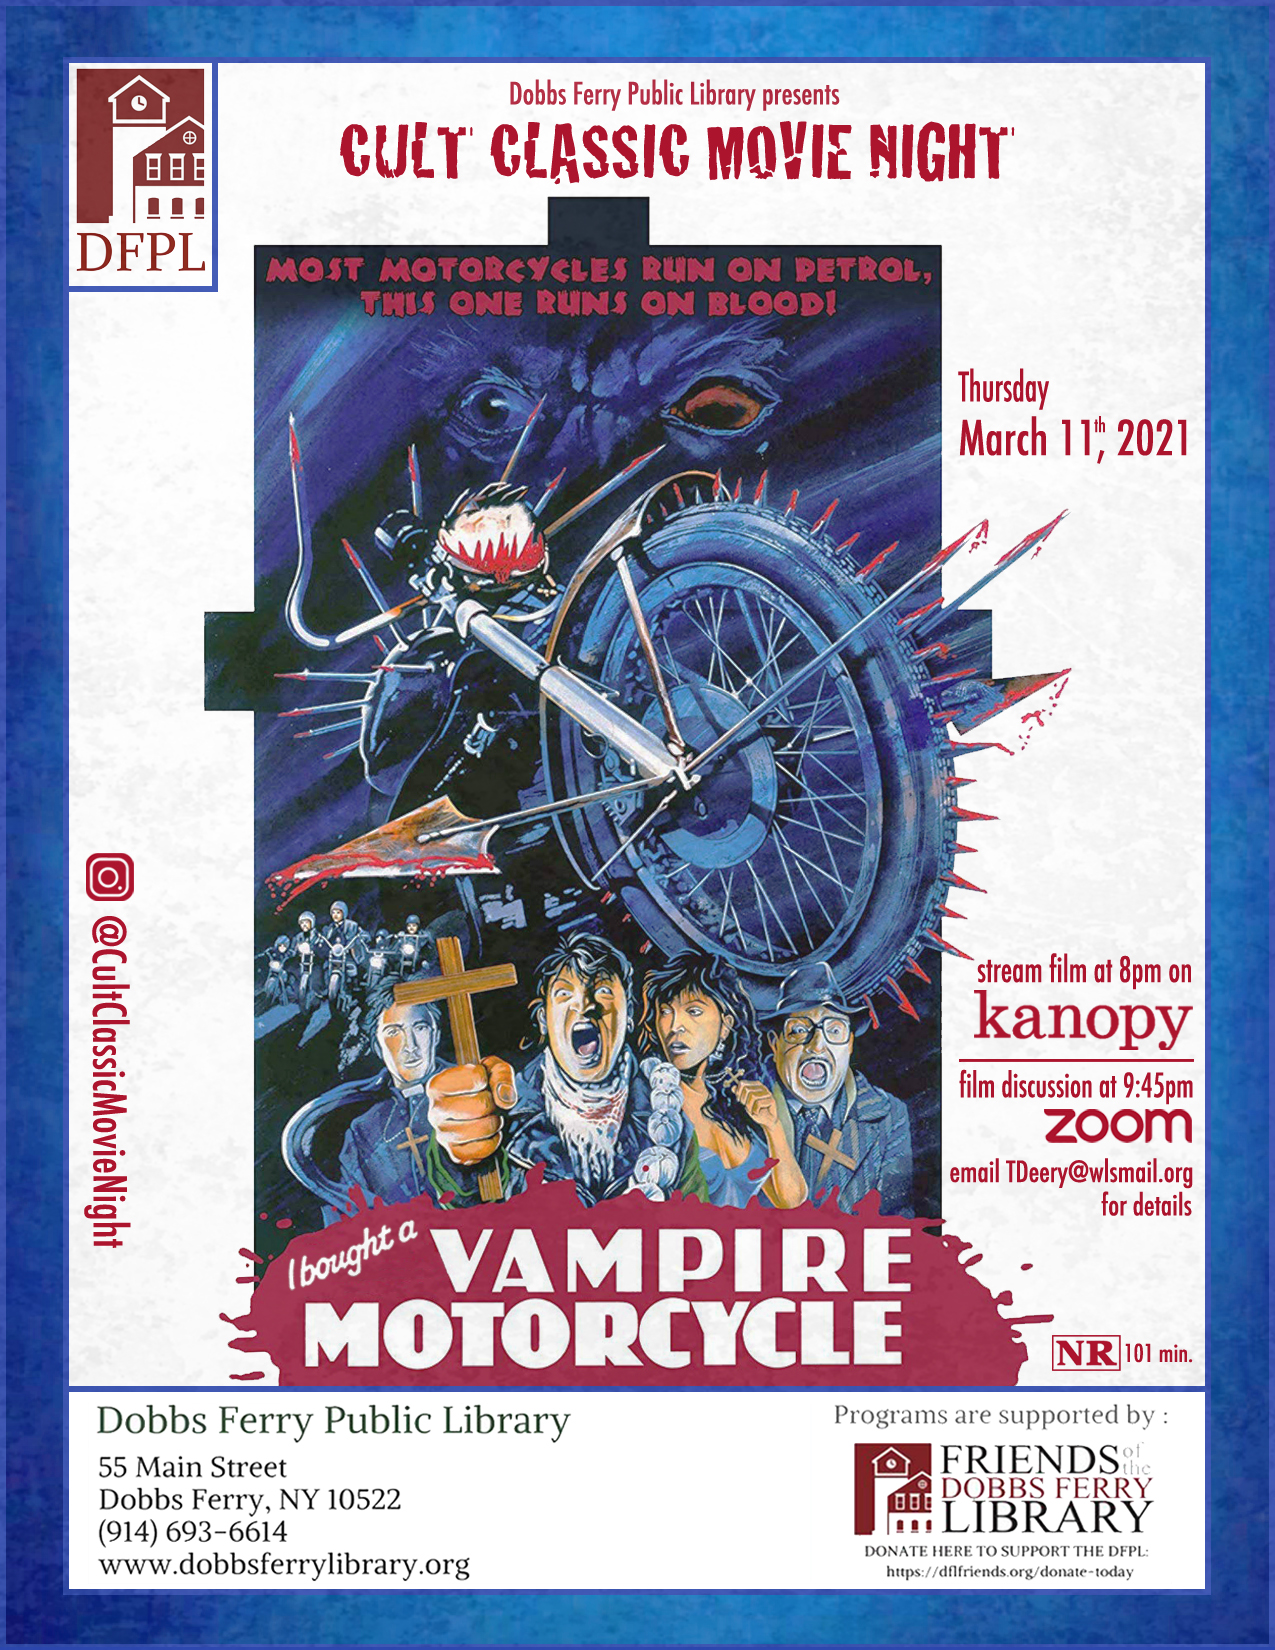 CCMN: I Bought A Vampire Motorcycle